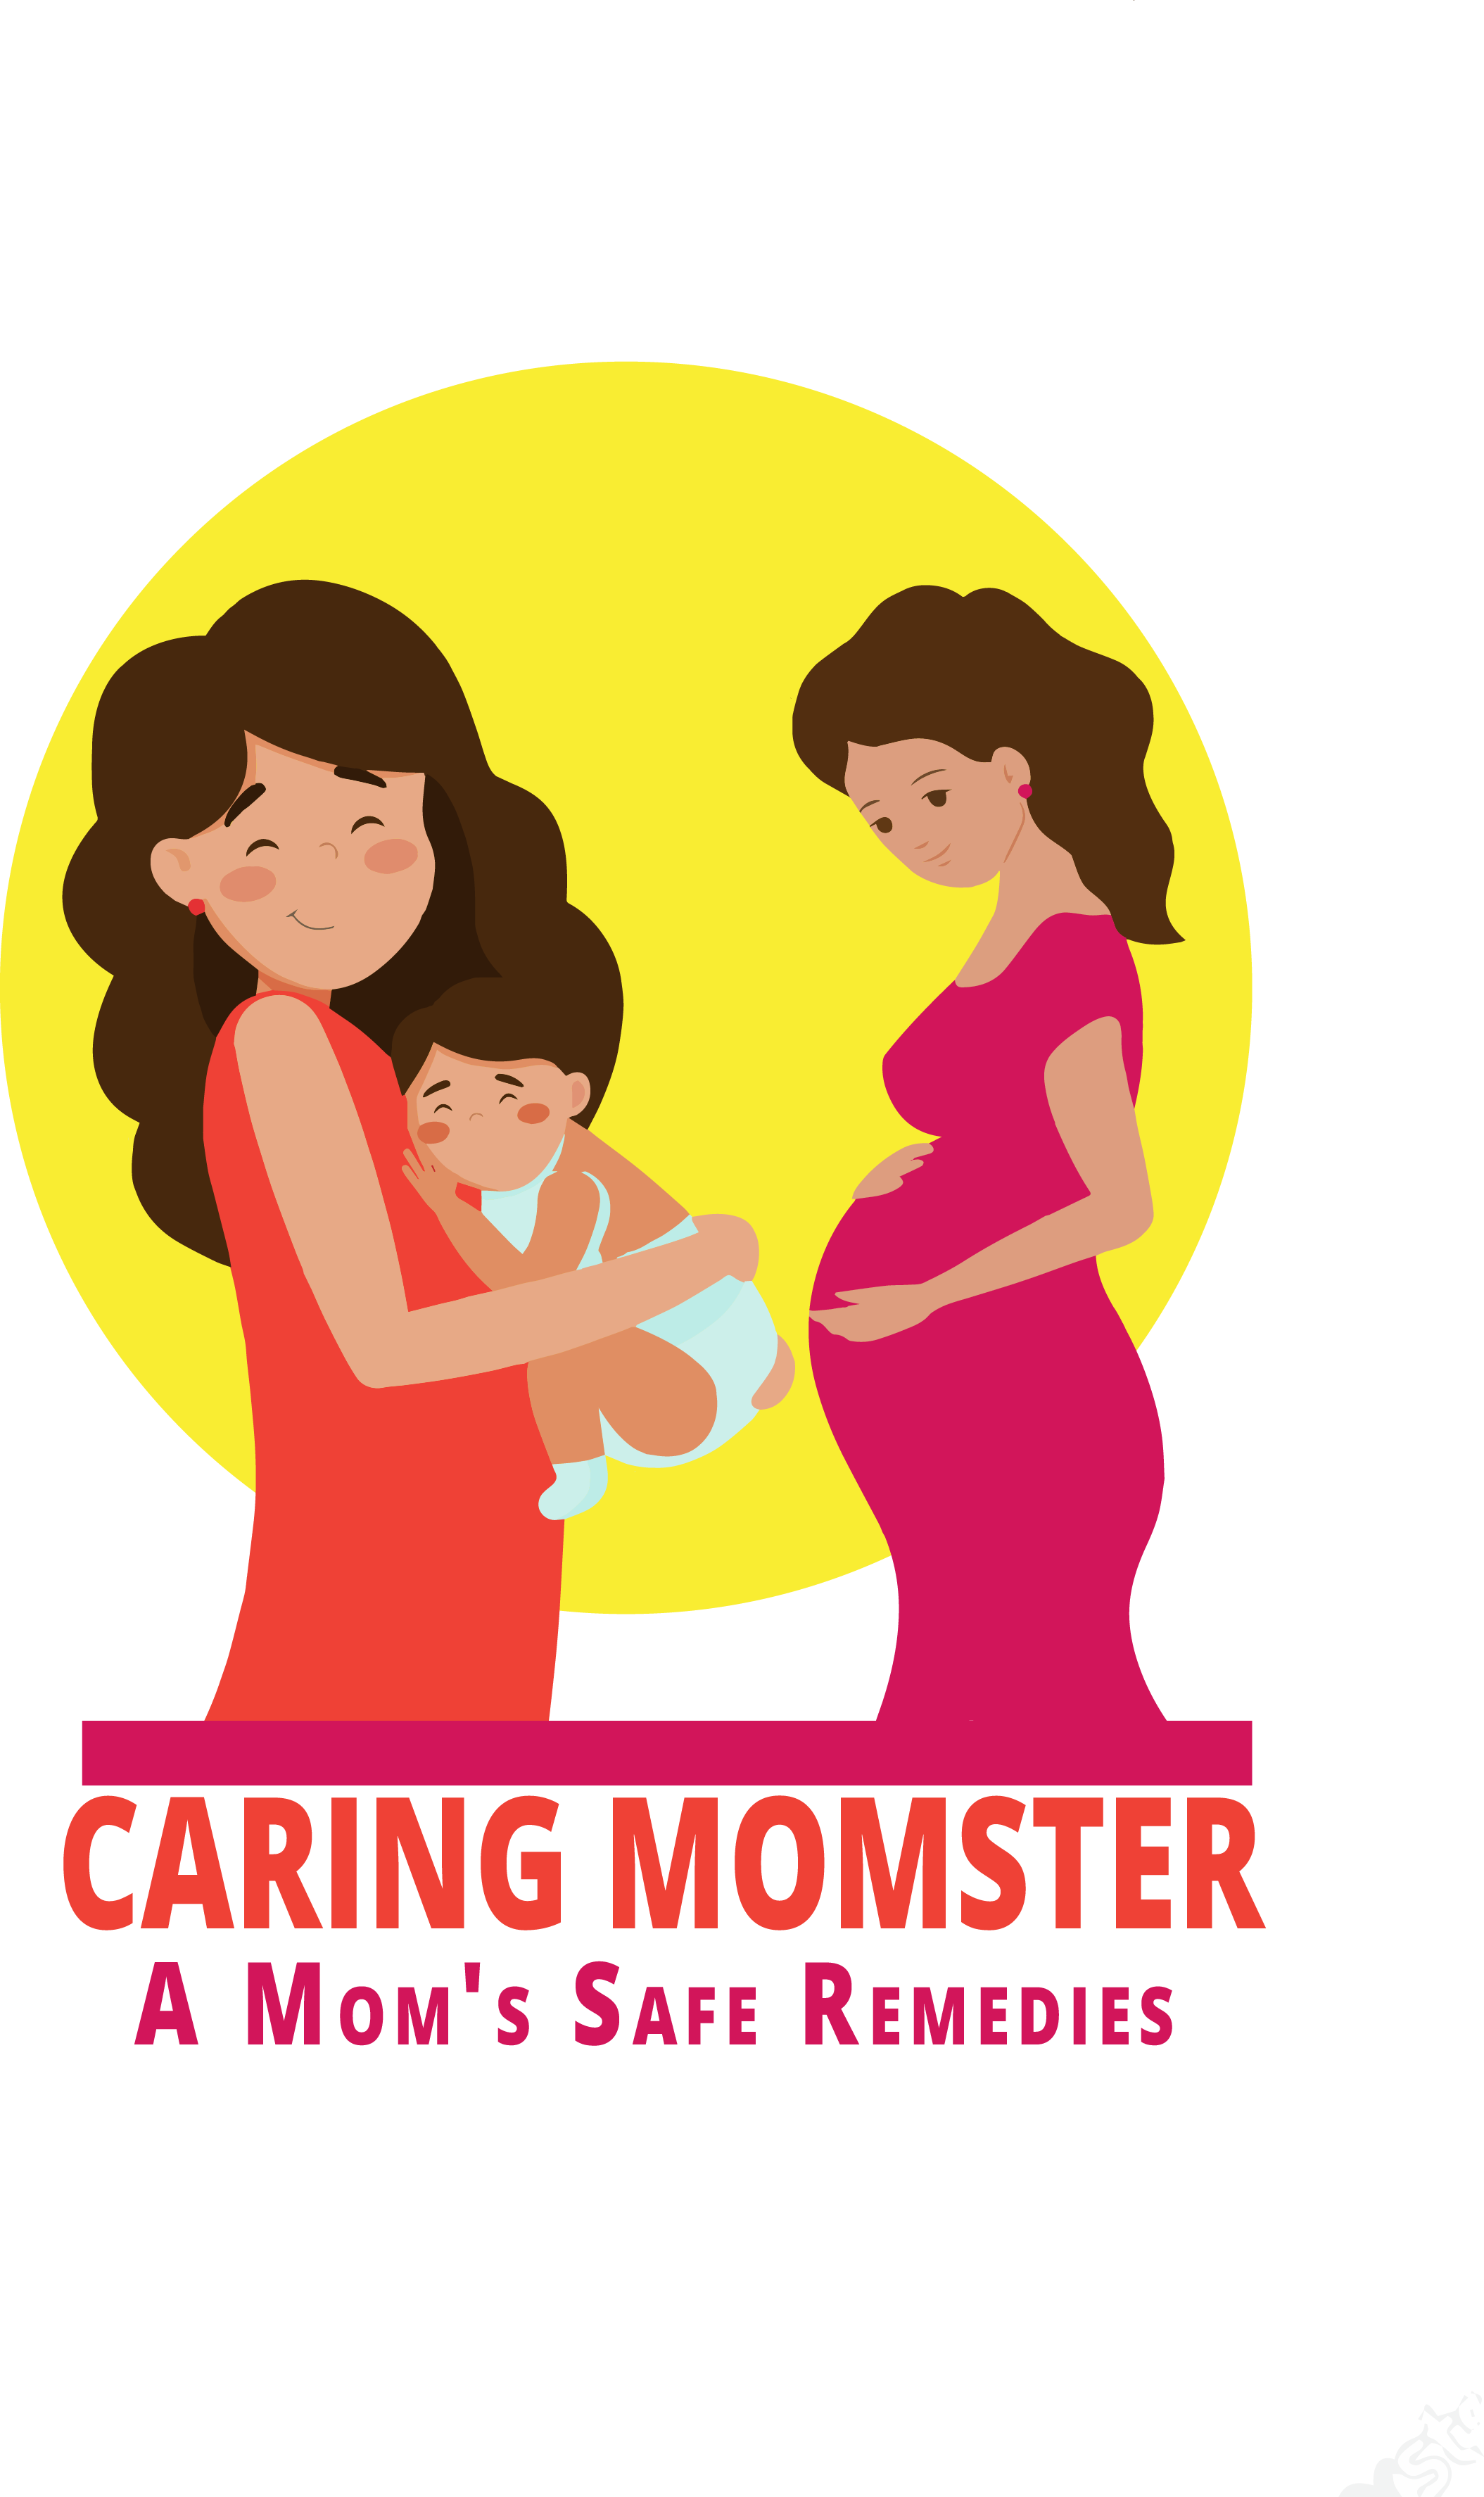 Caring Momster